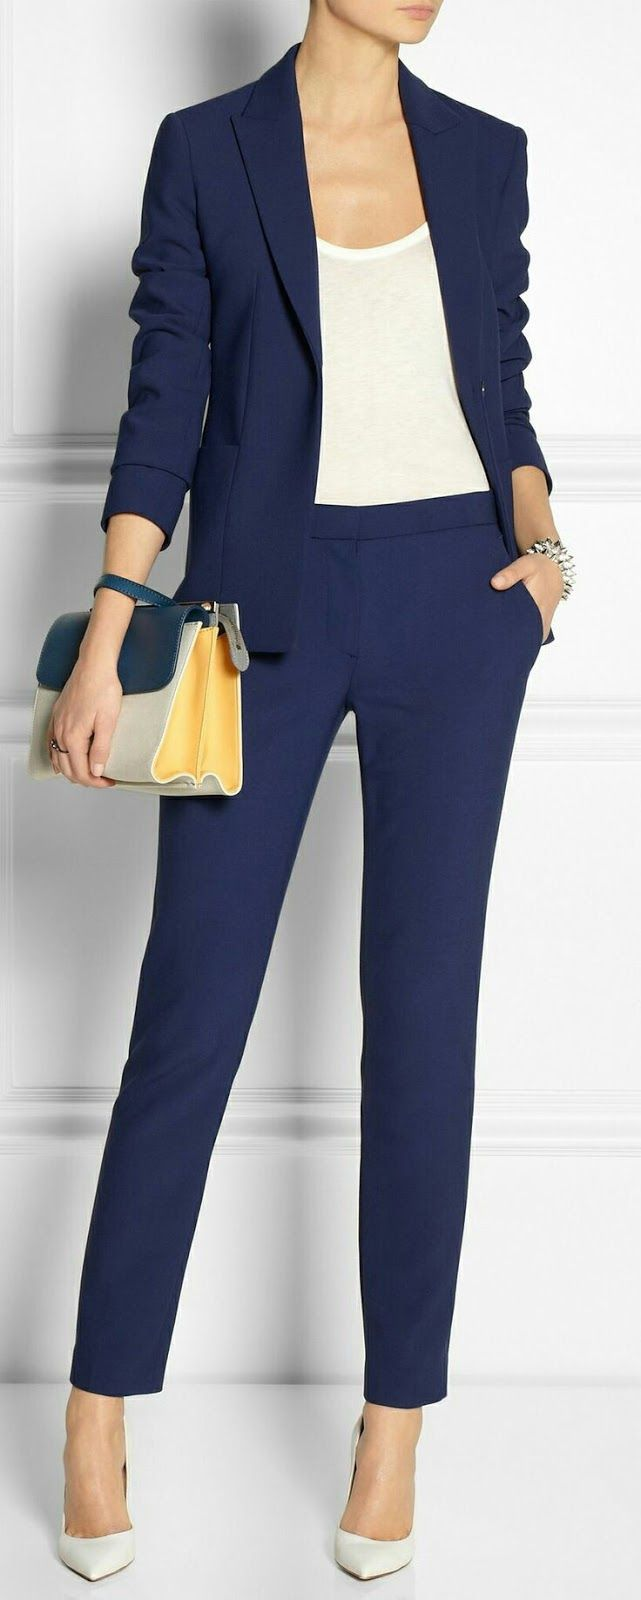 For Women As Well Men A Navy Suit Is Almost Always Your Safest And Most Conservative Choice